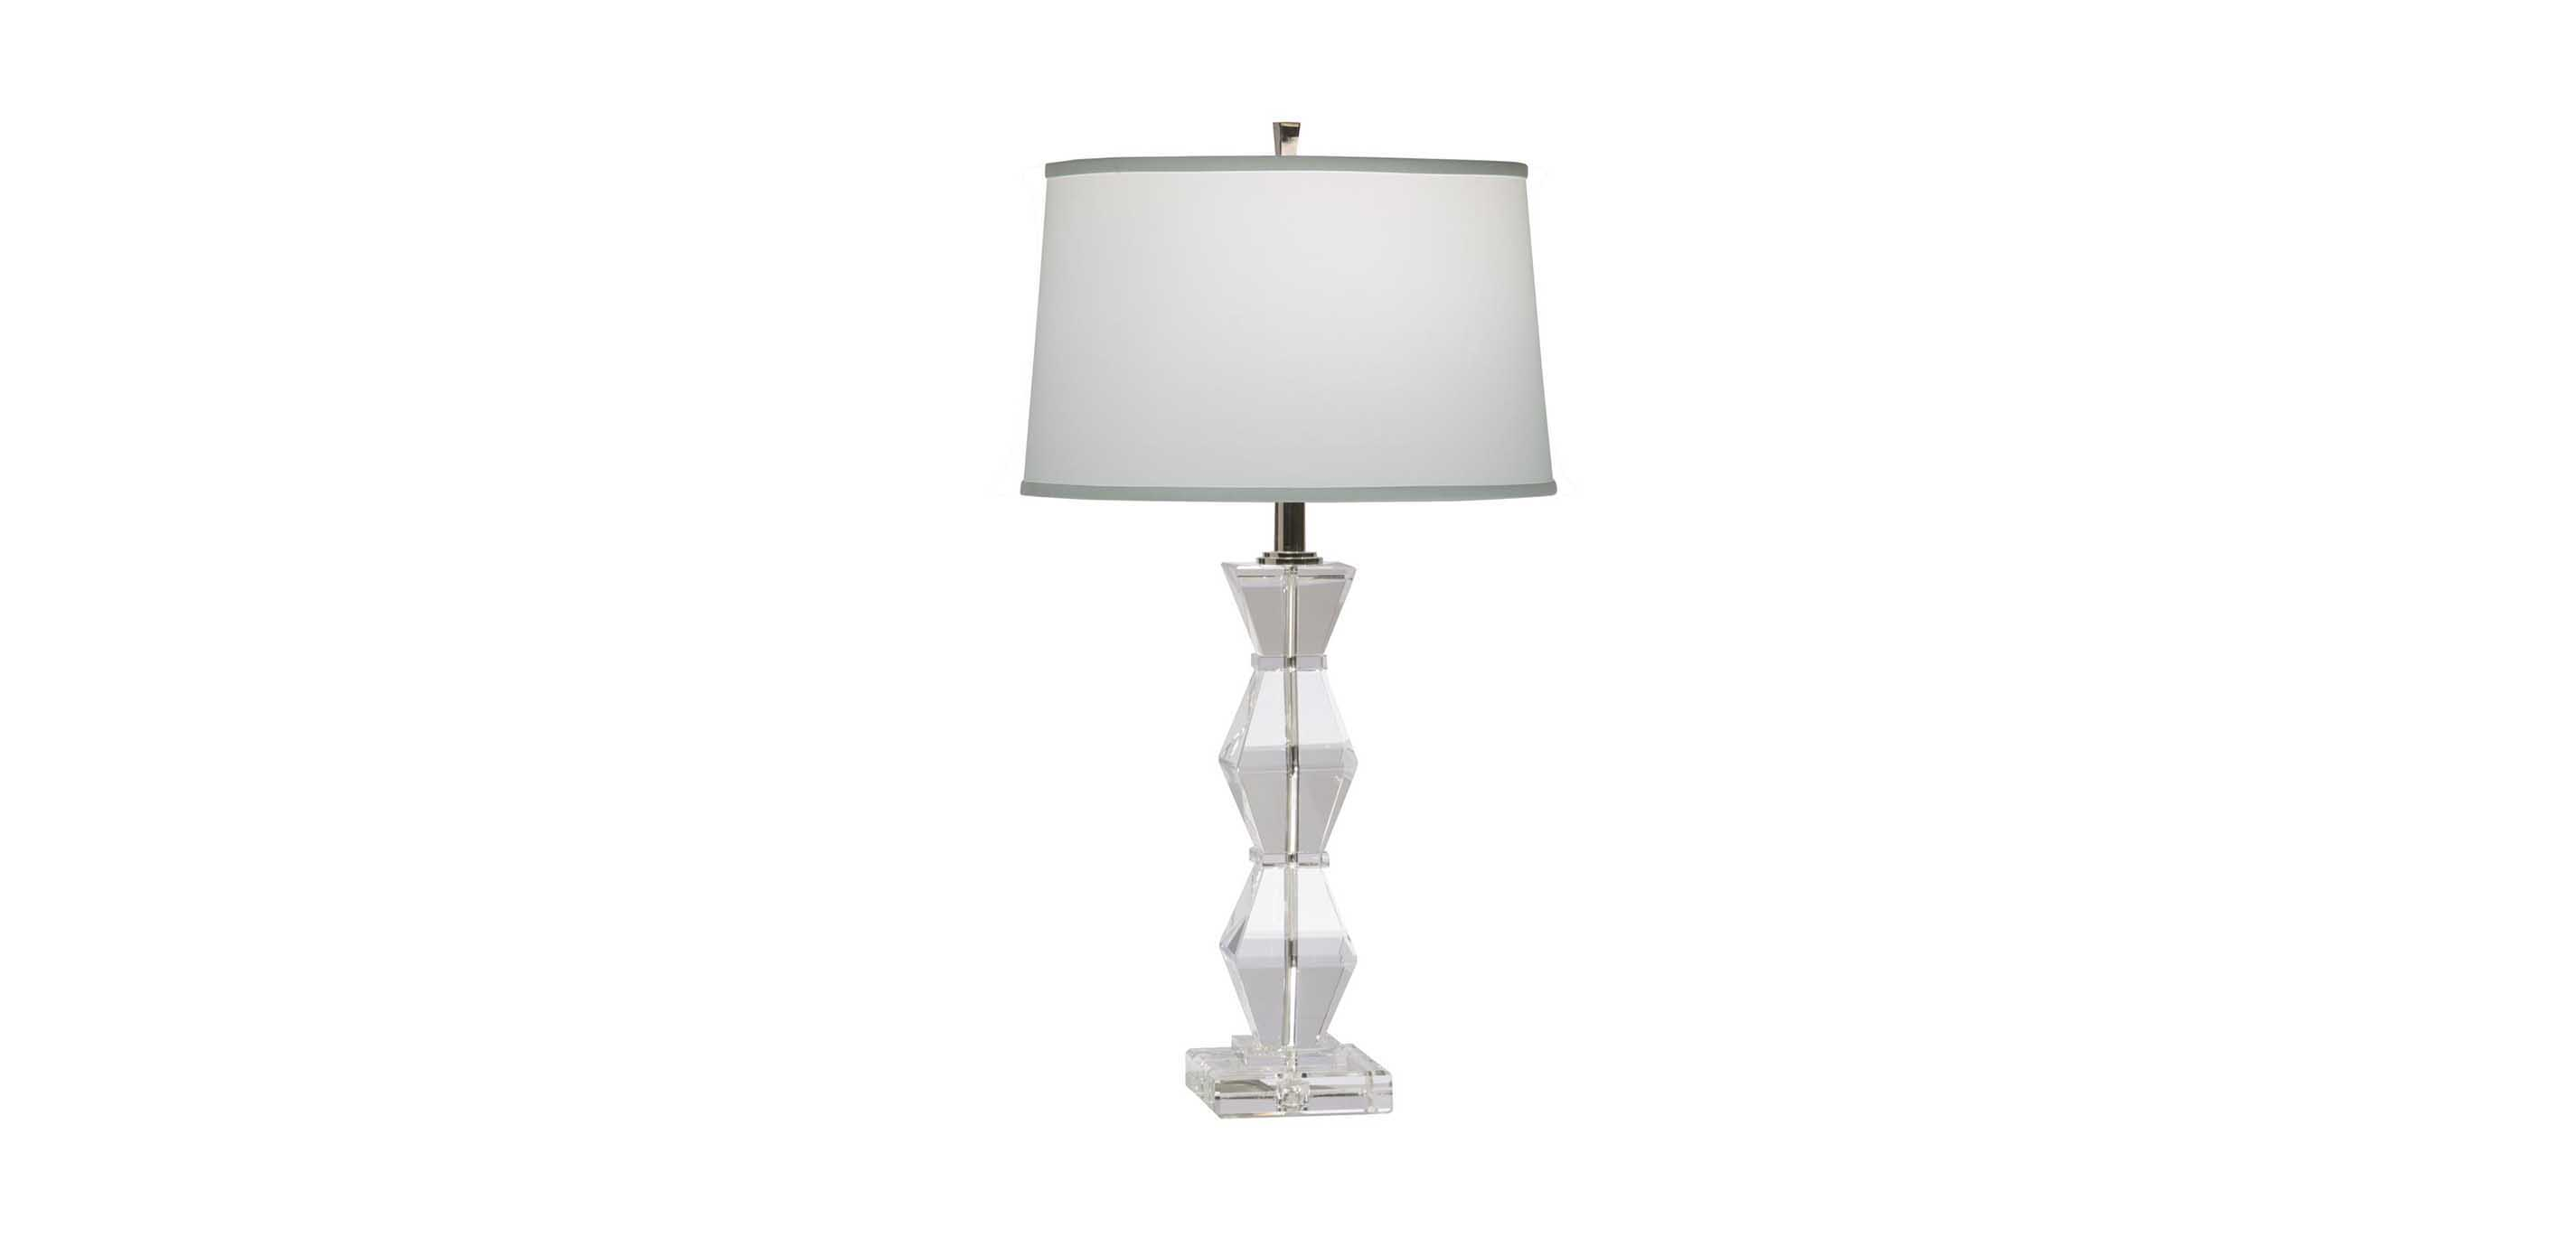 Images Geometric Crystal Table Lamp , , Large_gray